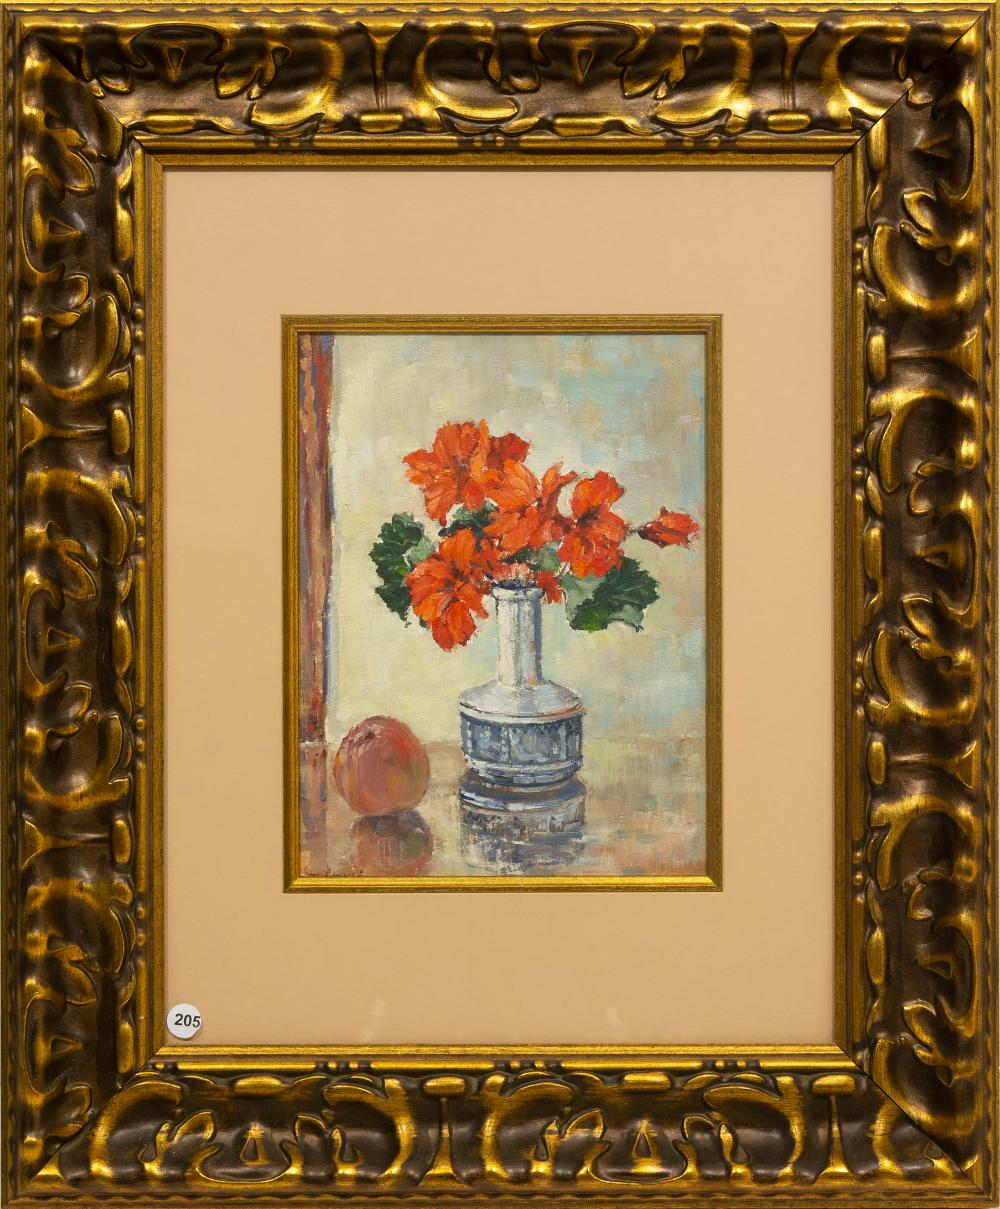 Bruce Hancock (SA 1924 - 1994) Oil, Still Life Flowers, Signed, 32 x 24